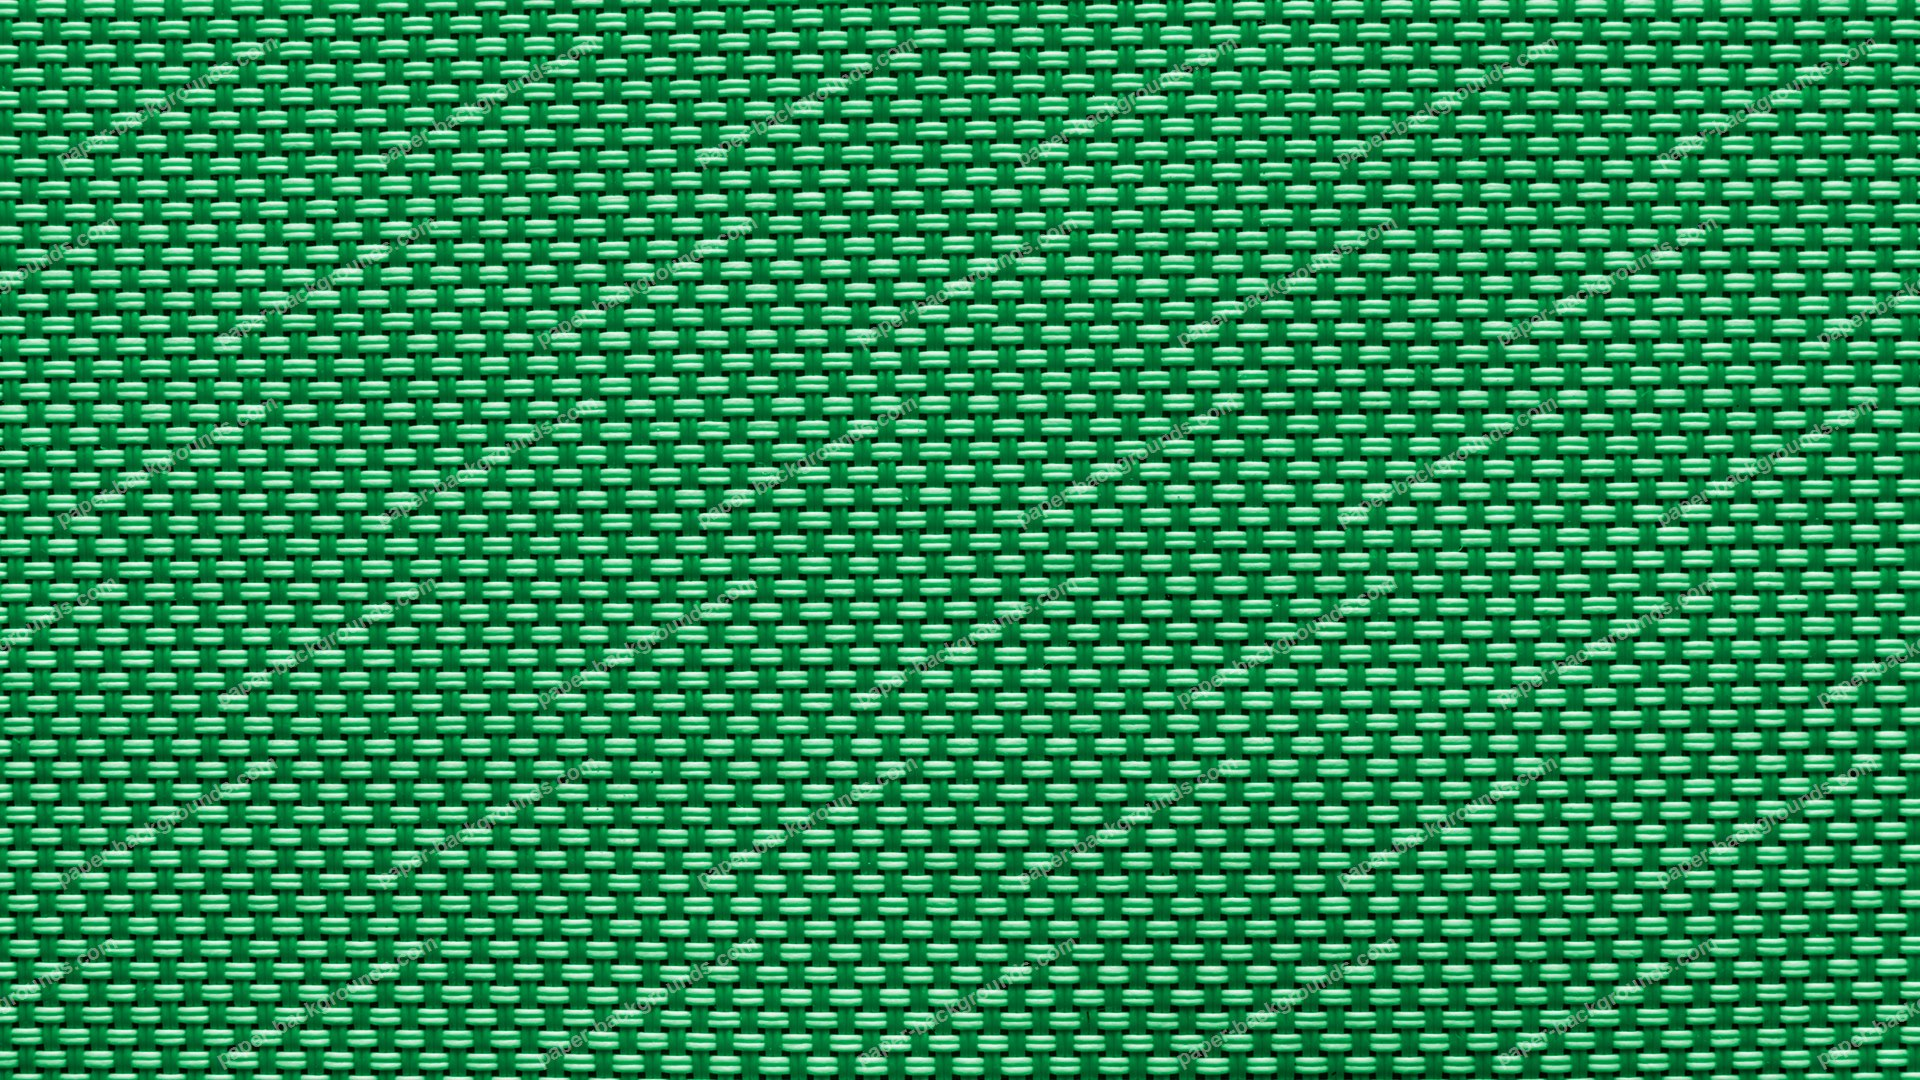 Green bed sheets texture - Chequered Green Squares Canvas Texture Hd 1920 X 1080p